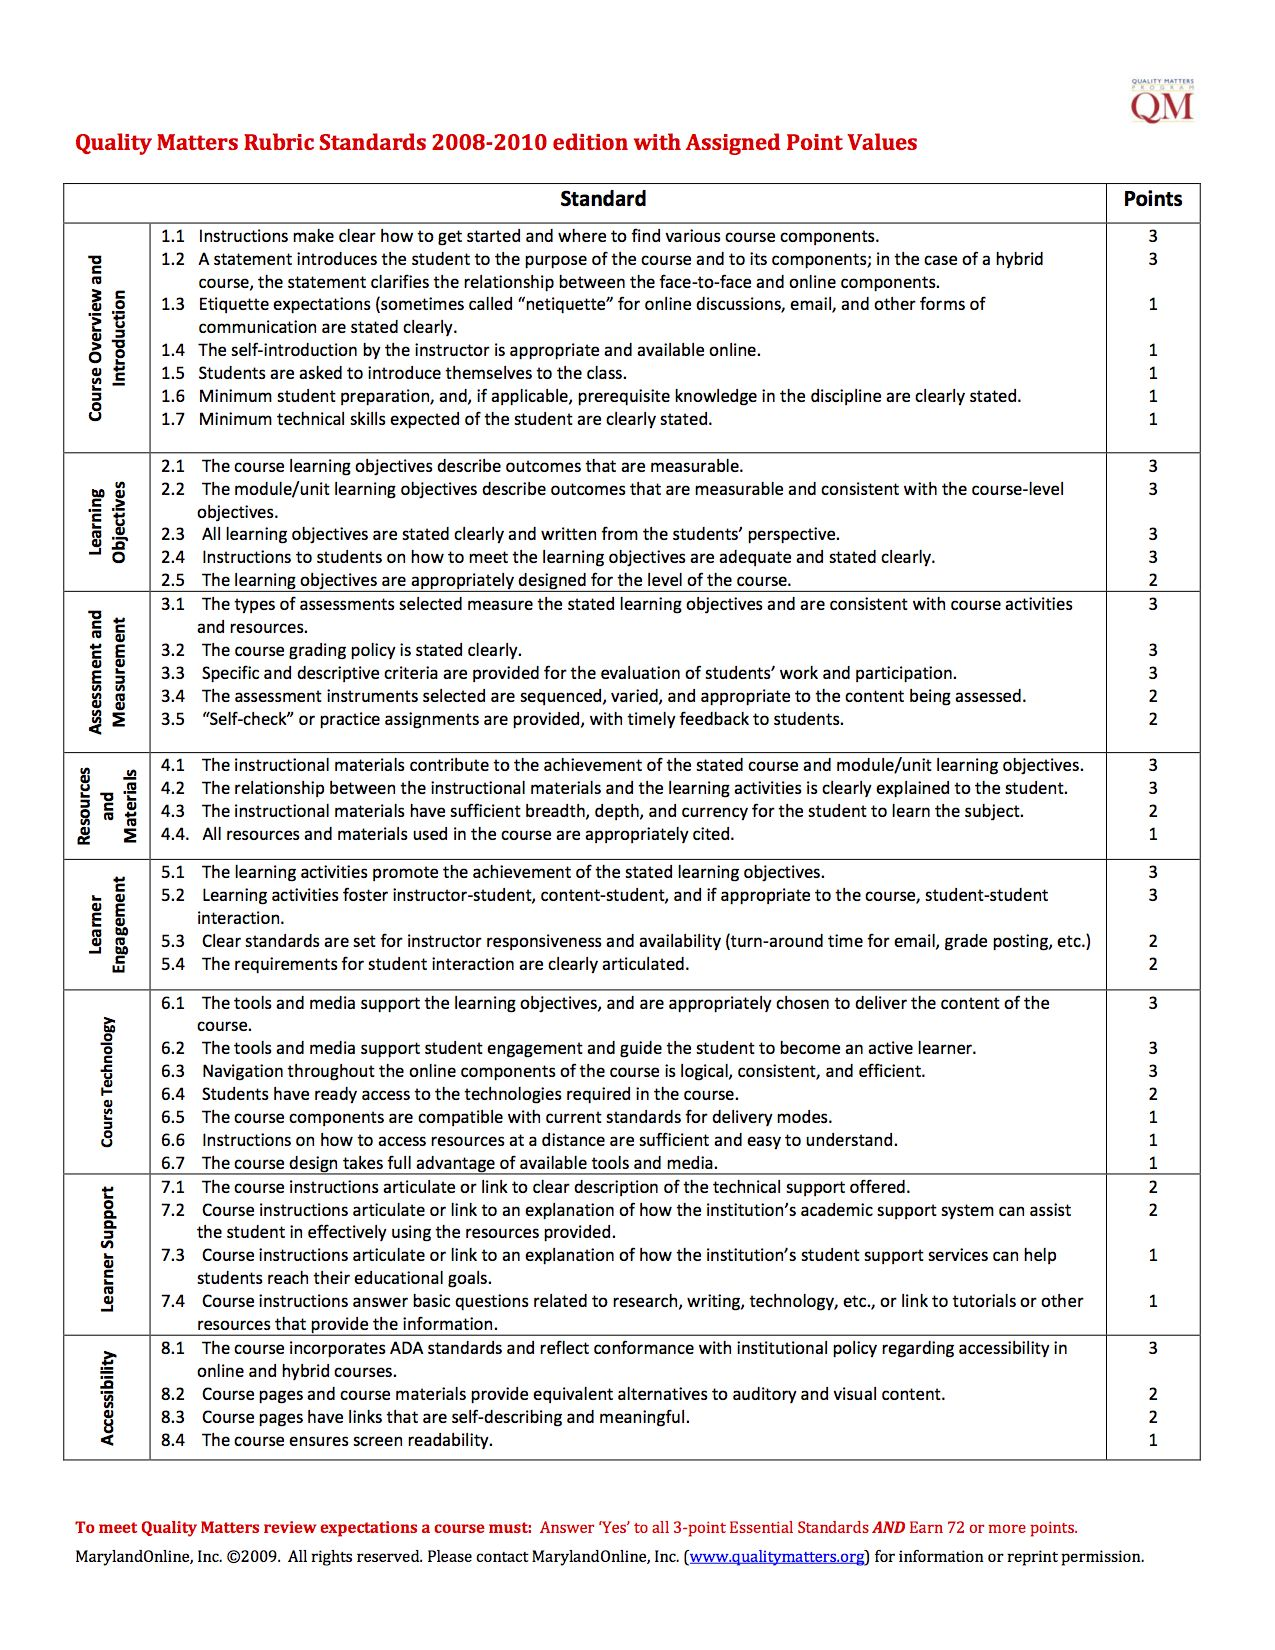 Quality Matters Rubric Standards For Online Facilitation Teaching College Instructional Design Rubrics